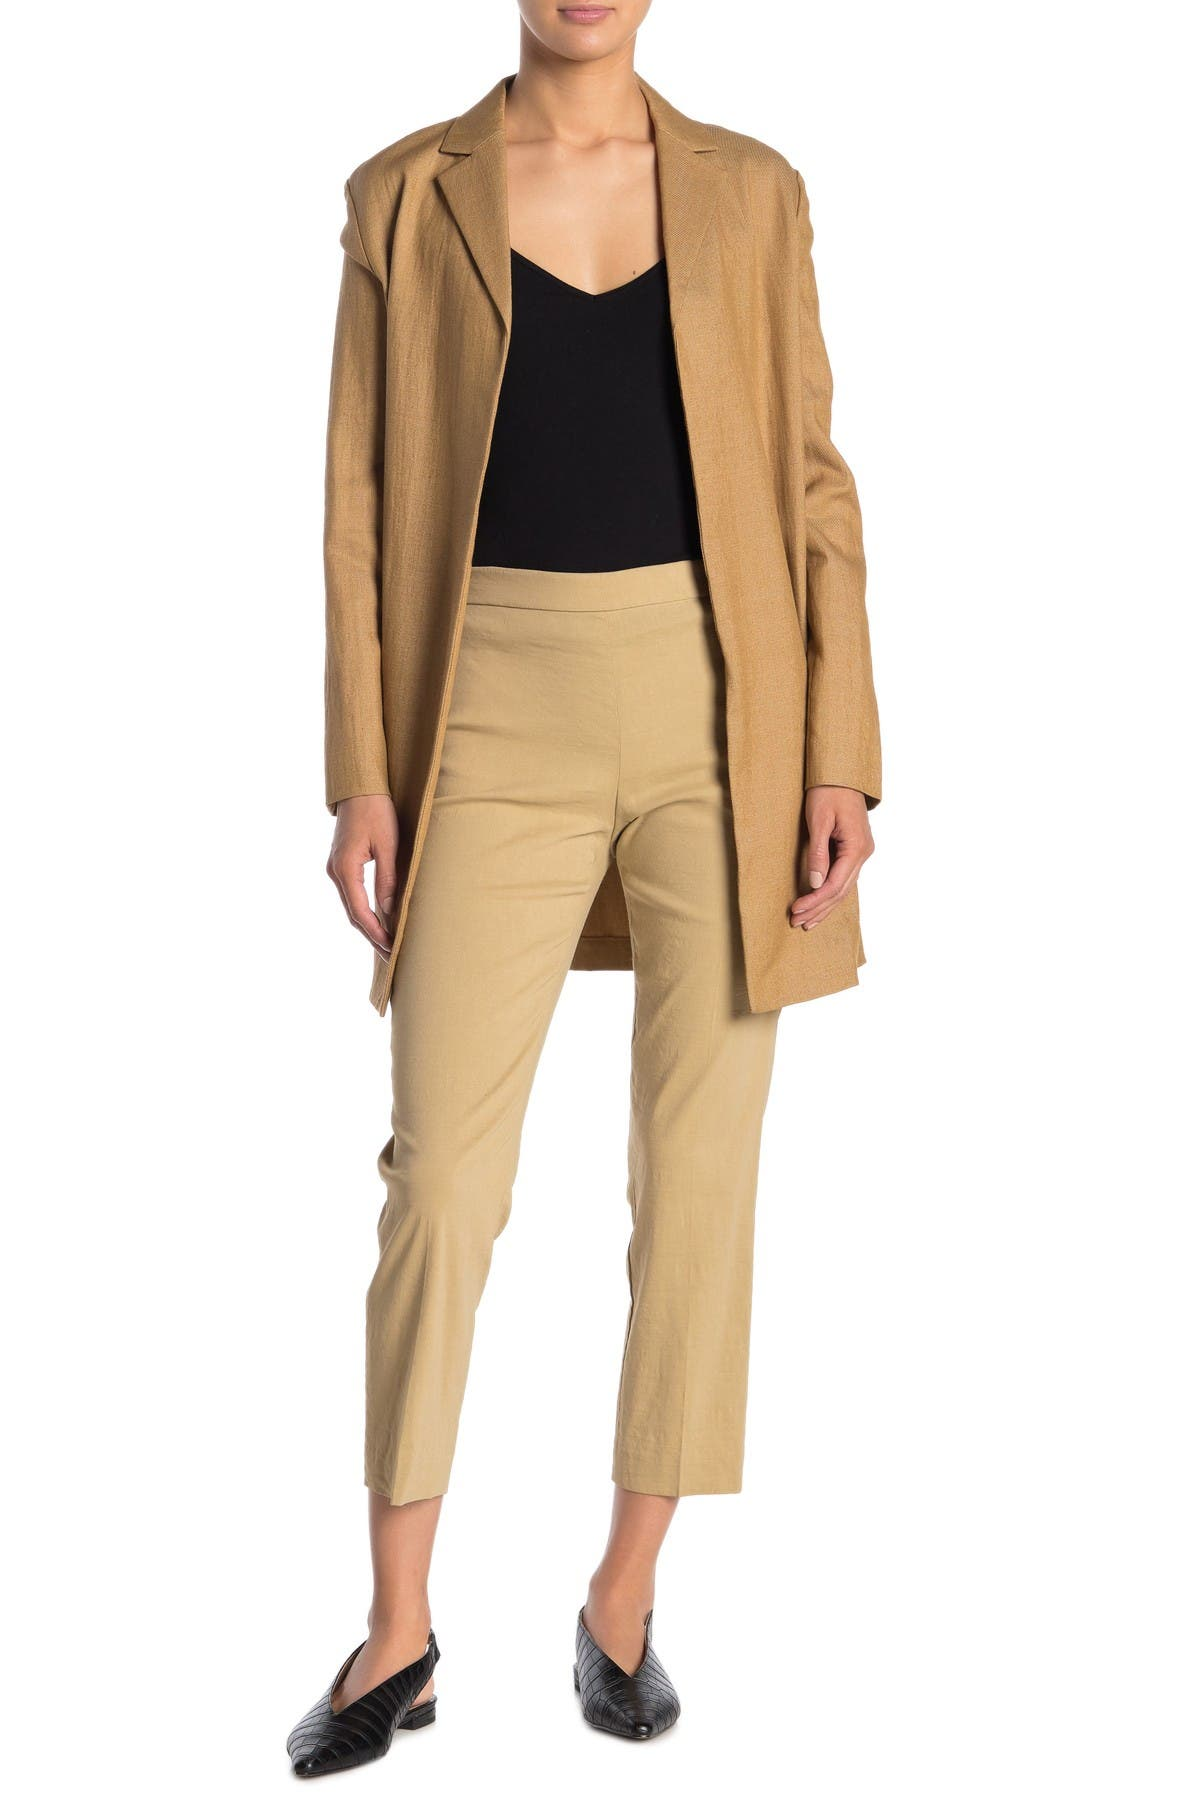 Busy Smart Beige Ladies Trousers Linen Look